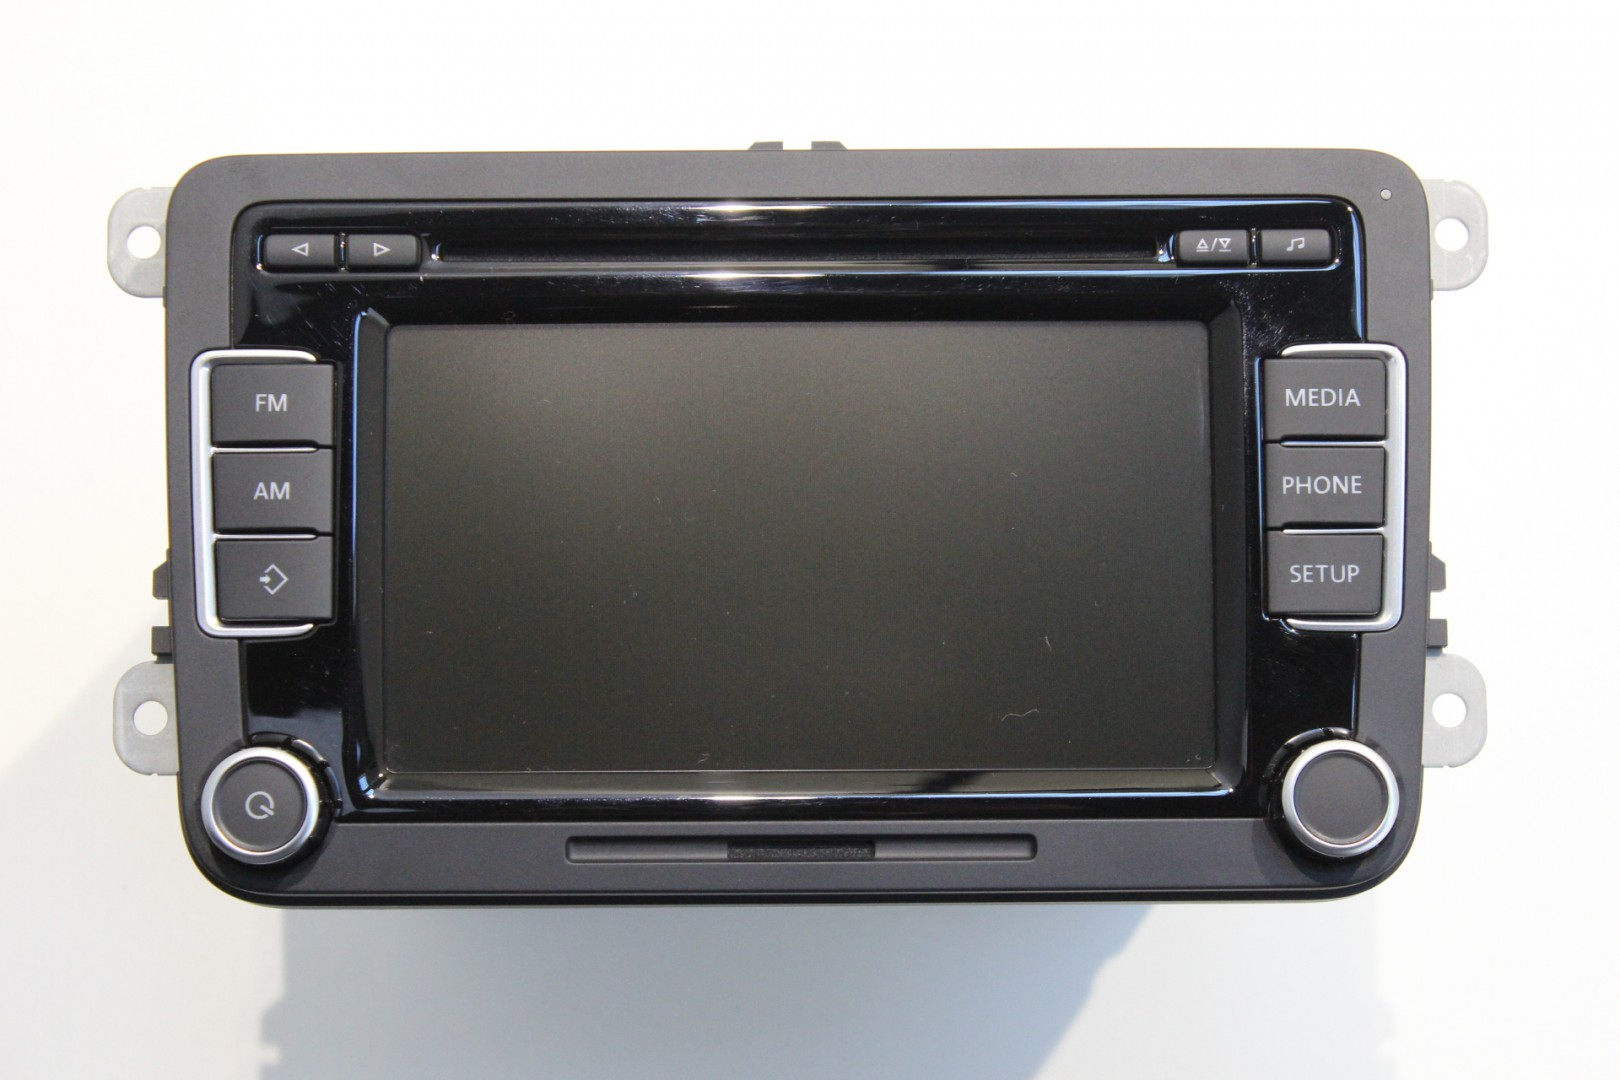 vw autoradio rcd 510 mit dab interface tauglich f r. Black Bedroom Furniture Sets. Home Design Ideas